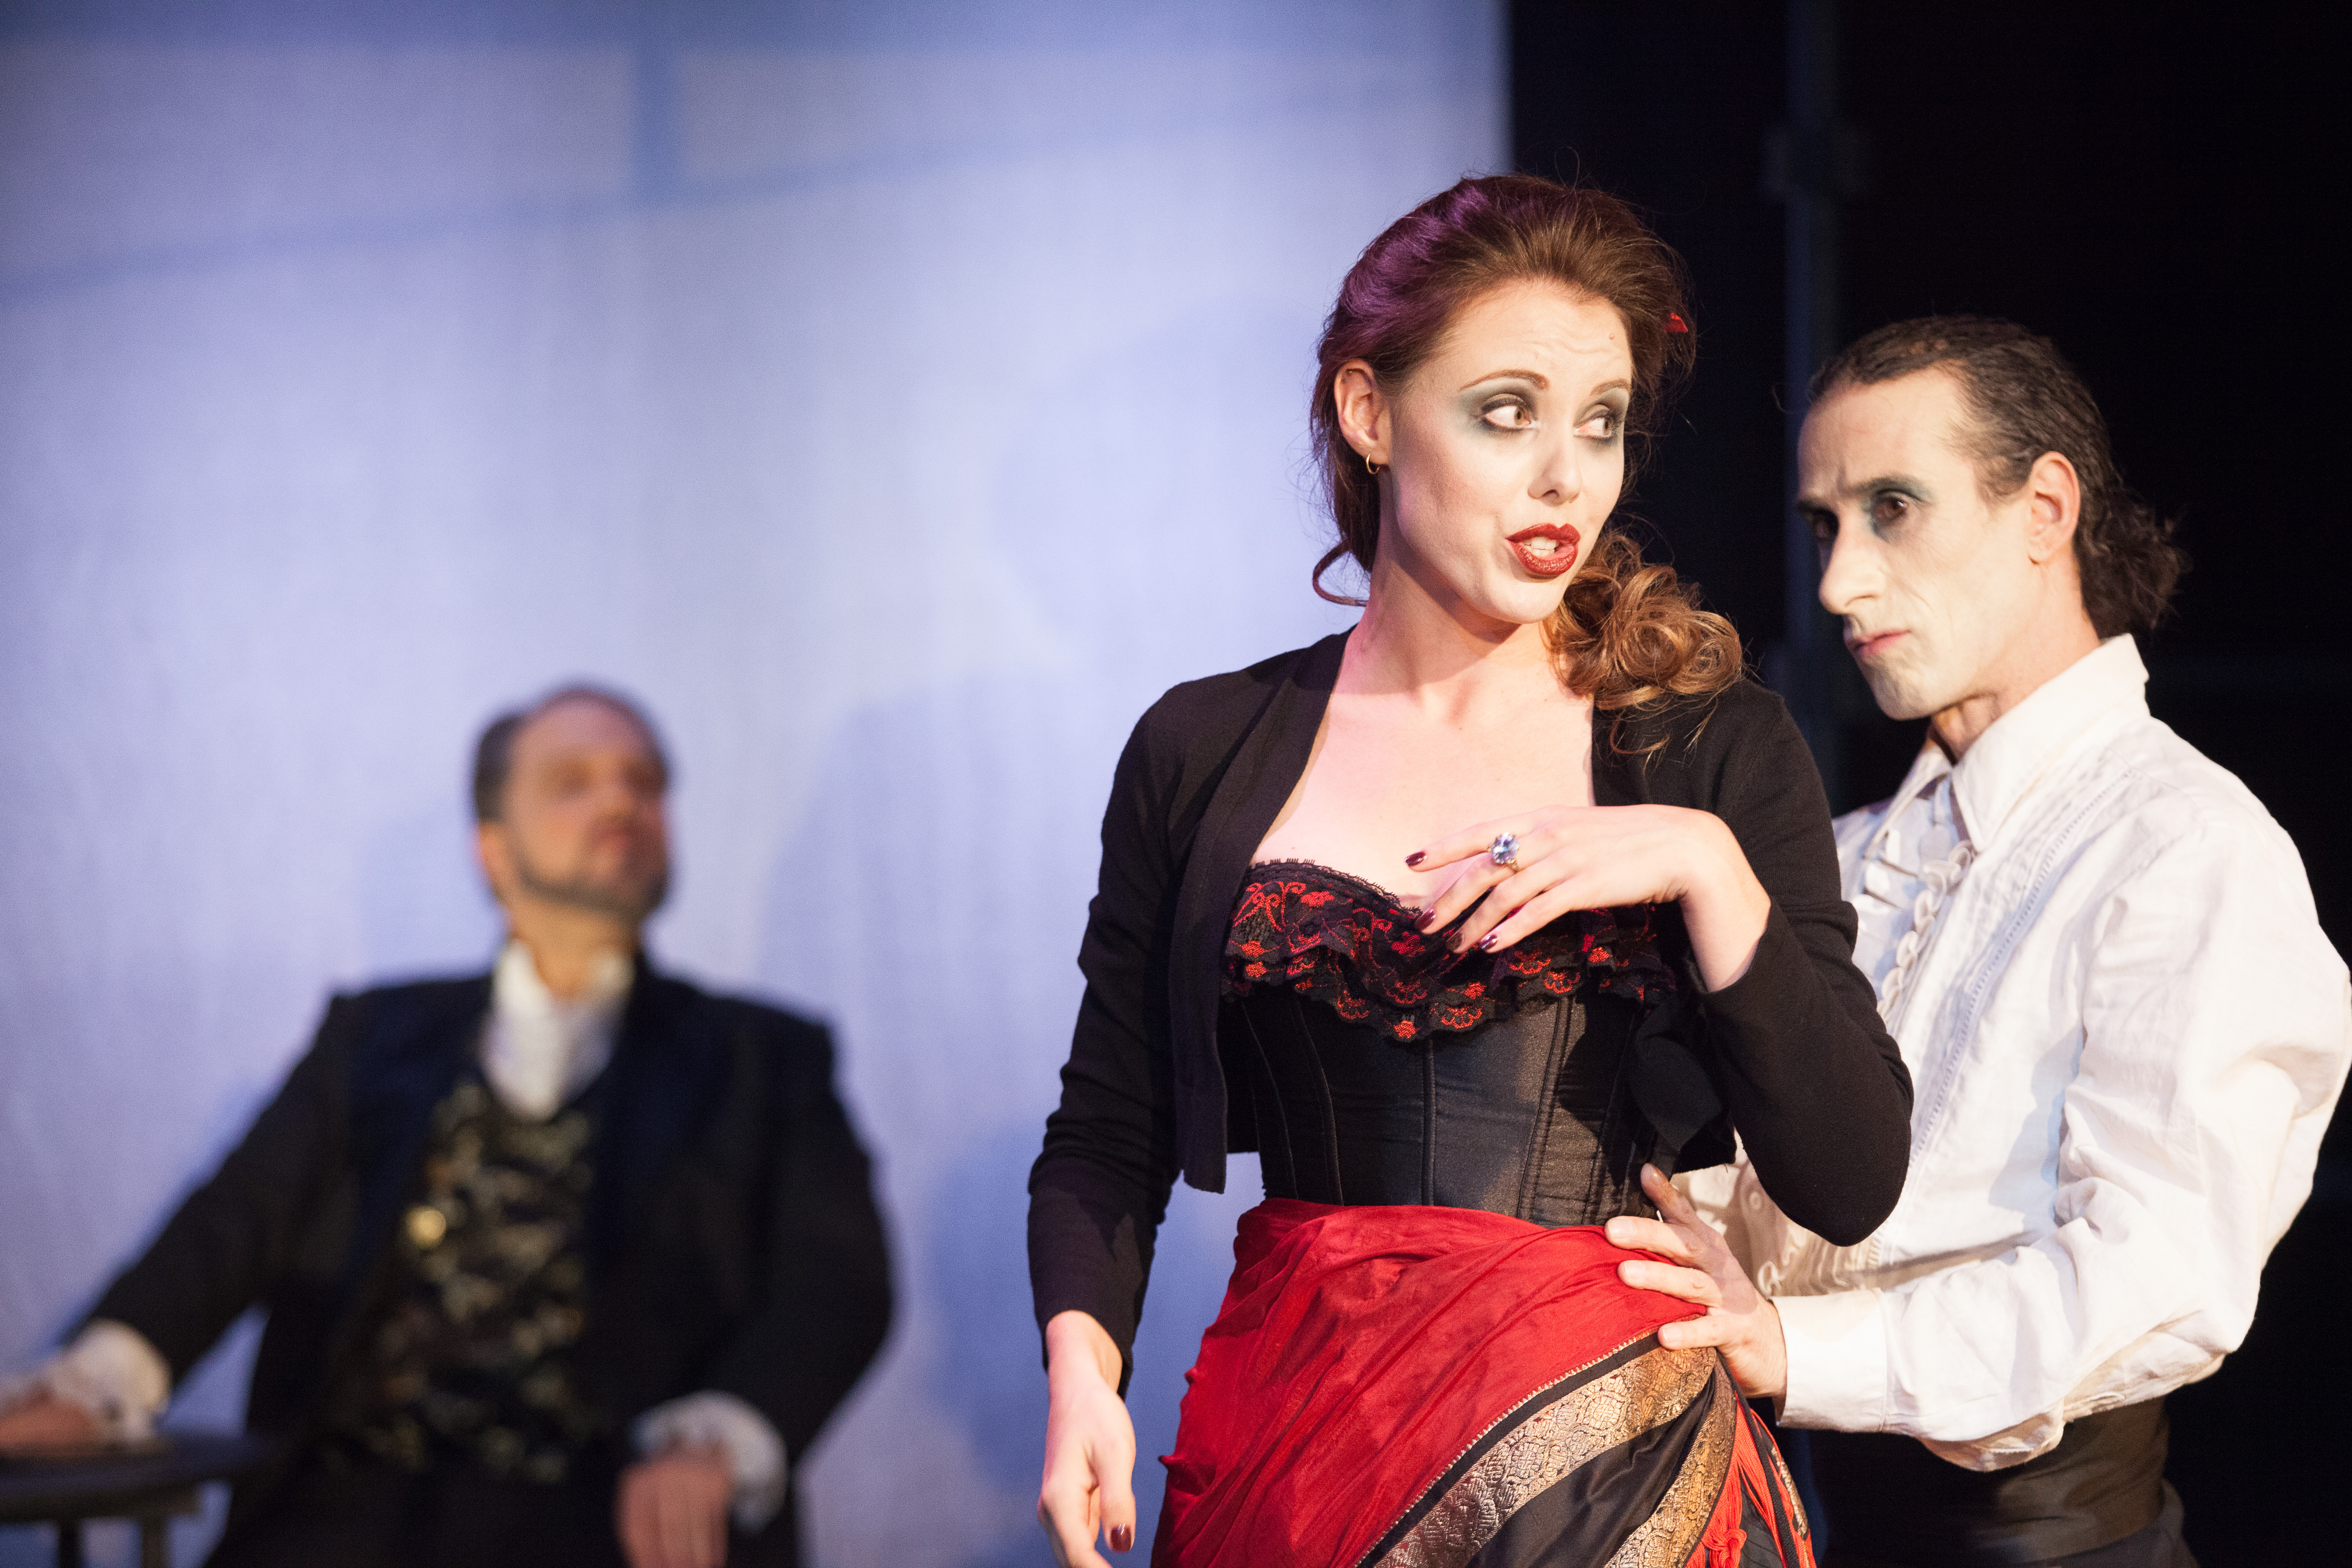 BWW Review: LOVE, SEX AND DEATH – CABARET OPERA at The Madrigal Room, At The Opera Studio